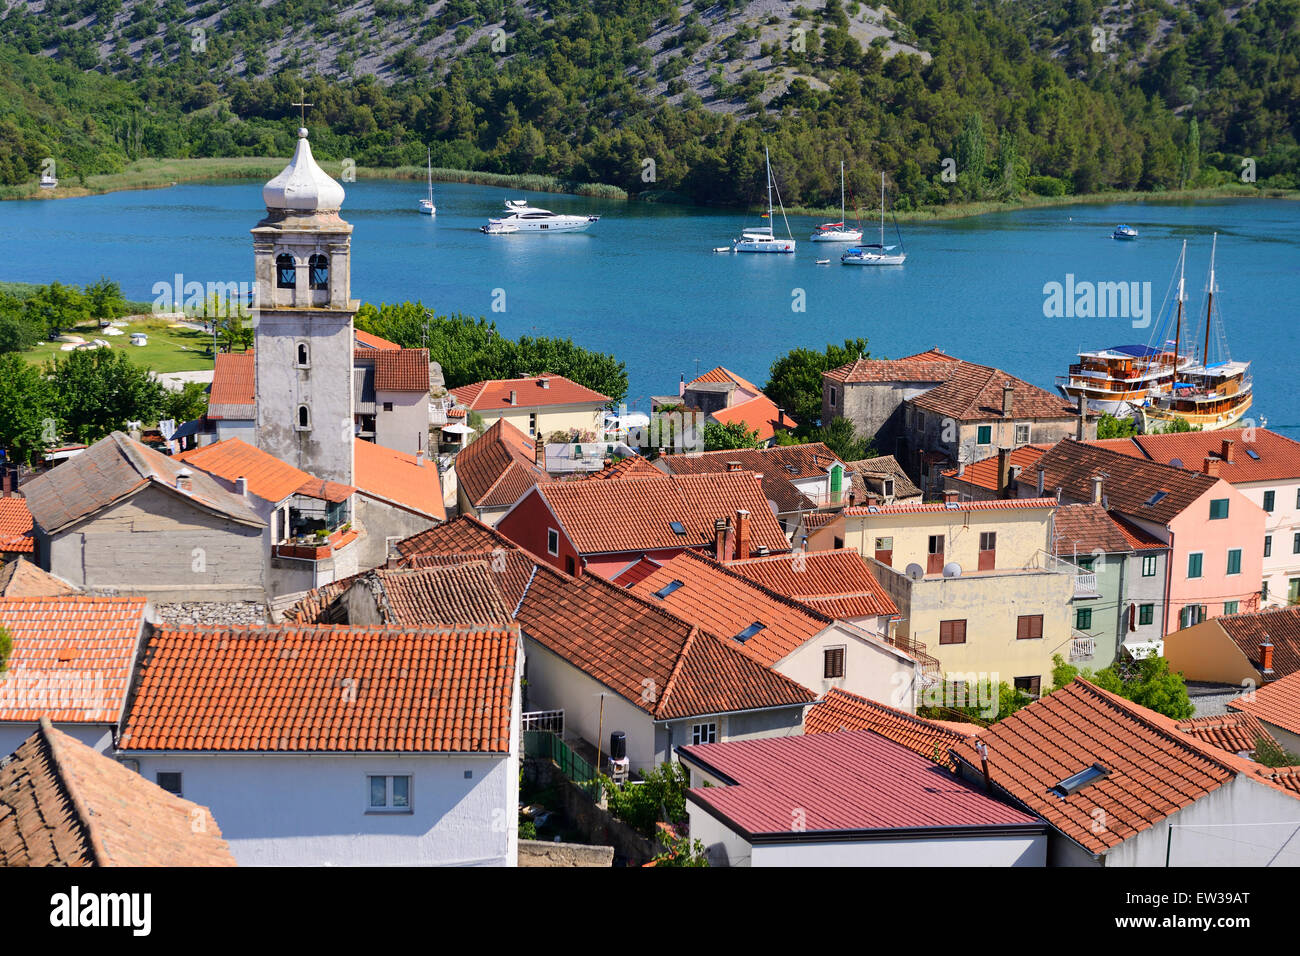 View of town of Skradin and Krka River from view point - Dalmatian Coast of Croatia Stock Photo